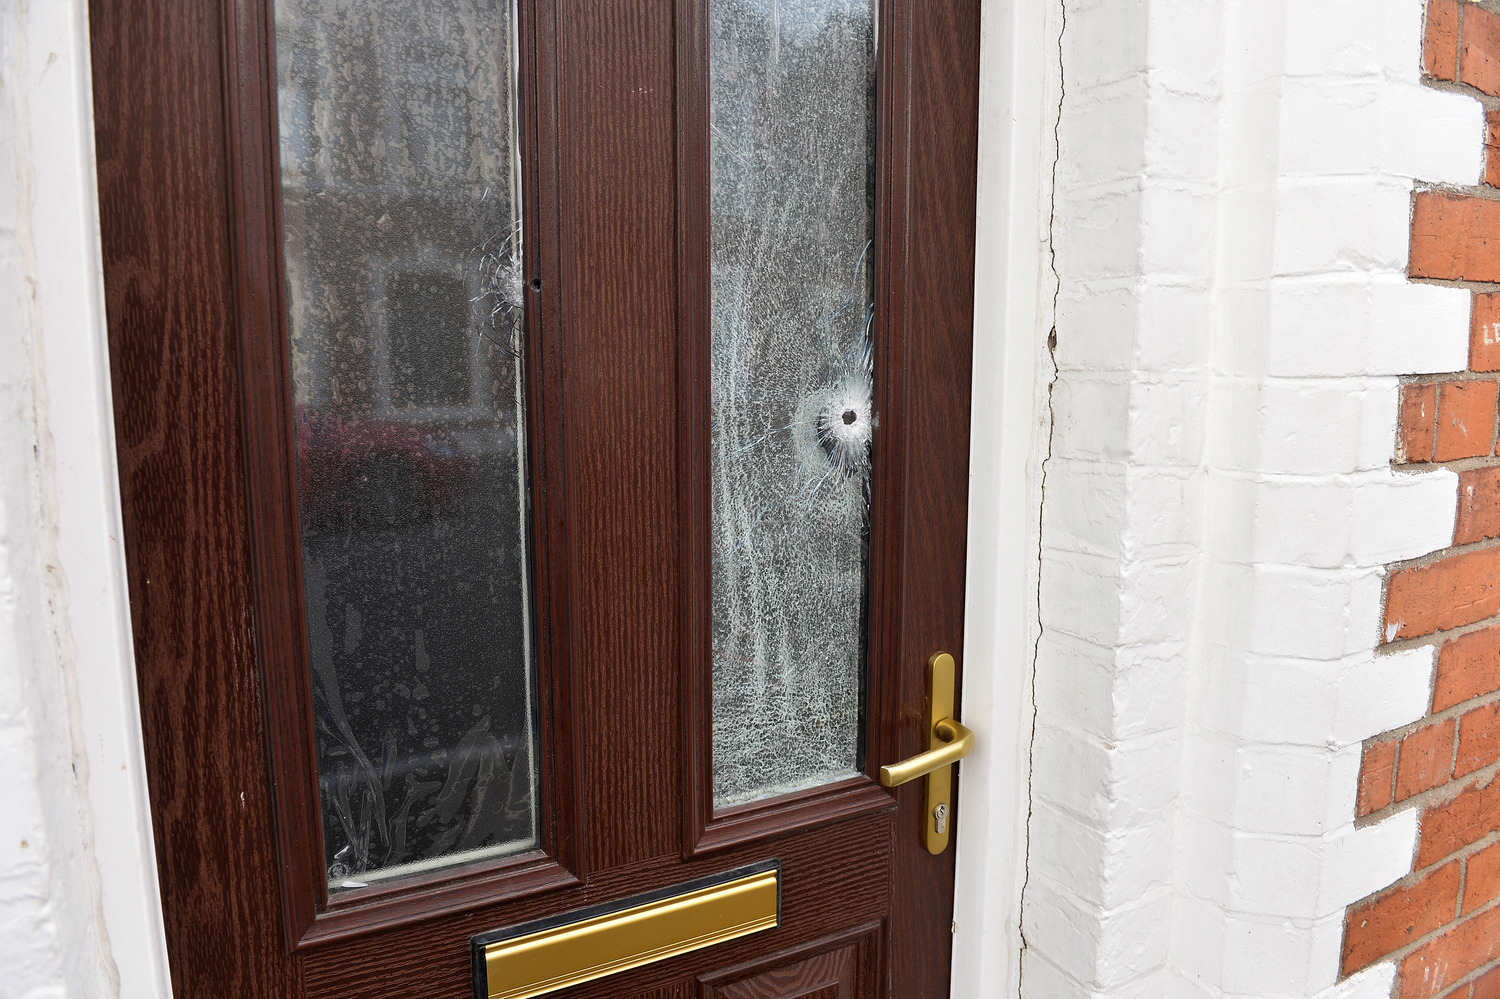 A bullet hole in the front door of a home. Picture credit Press Eye.